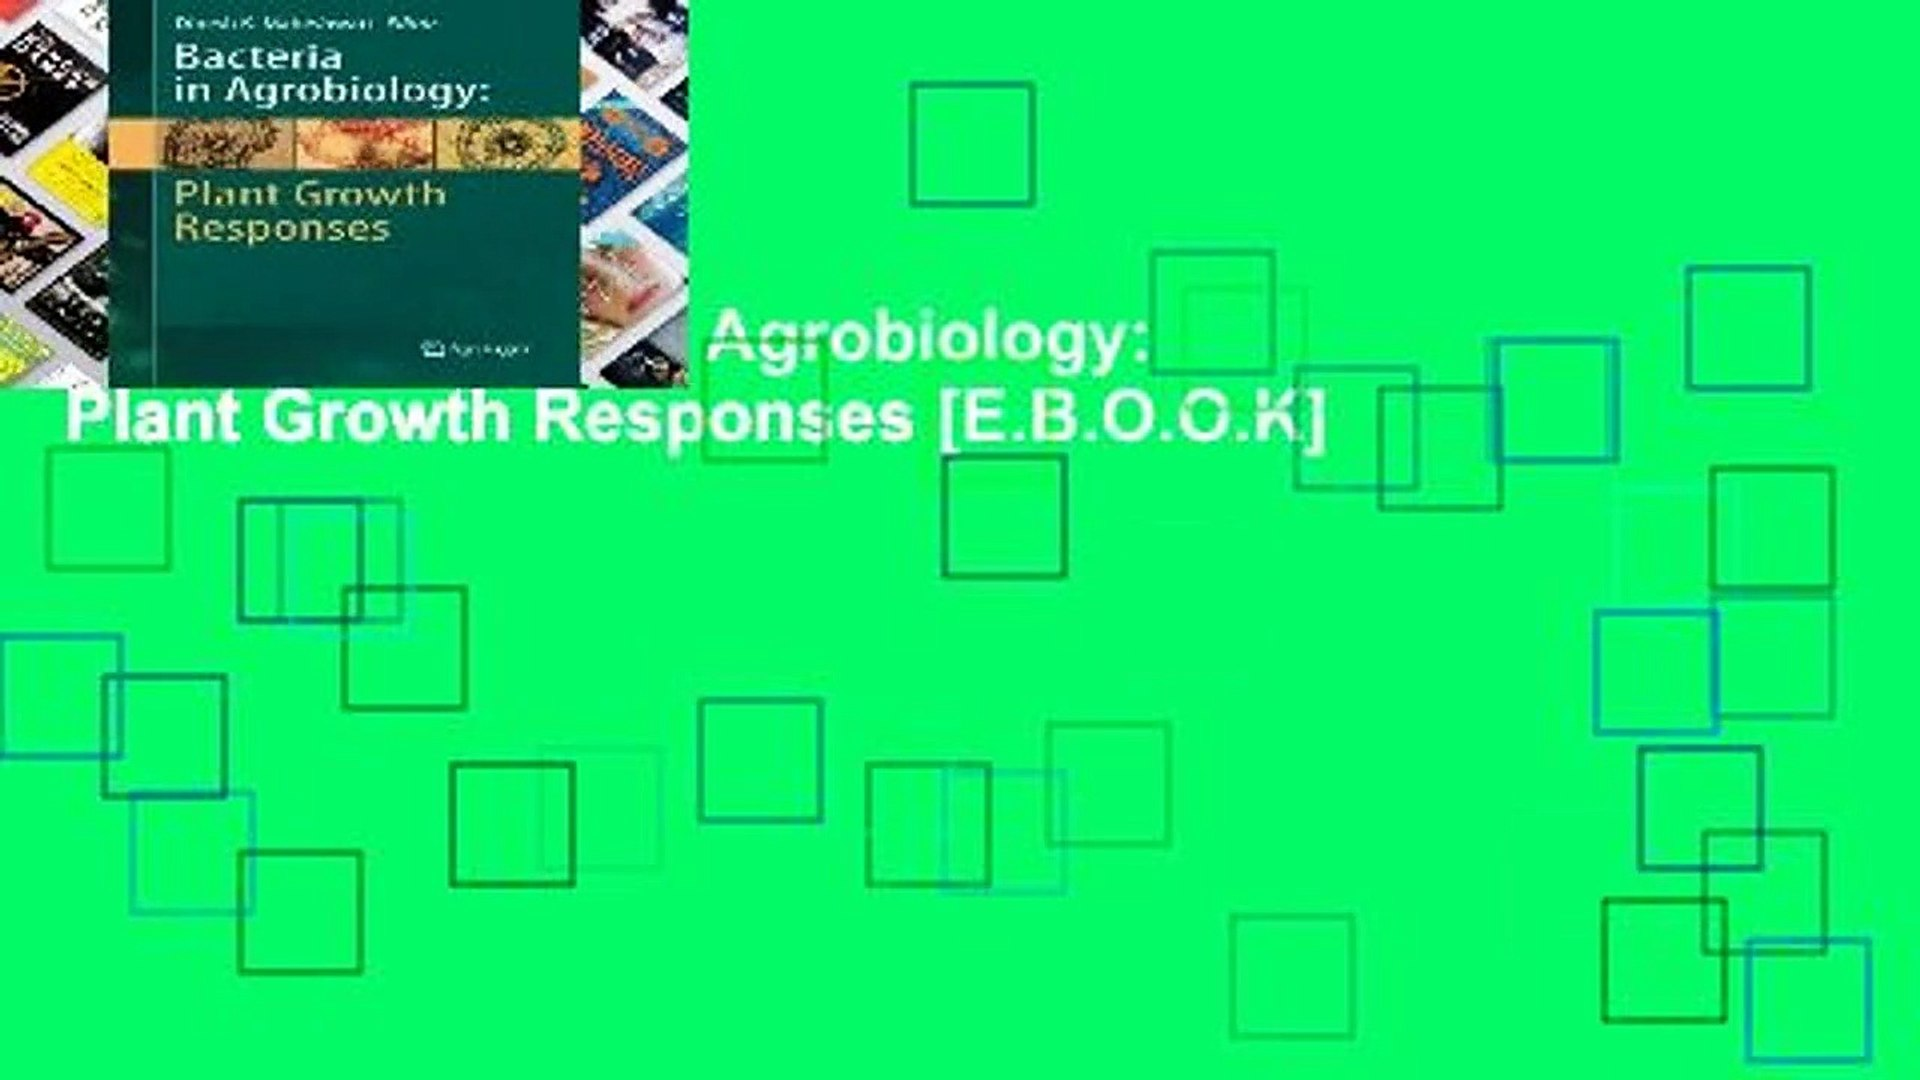 [P.D.F] Bacteria in Agrobiology: Plant Growth Responses [E.B.O.O.K]